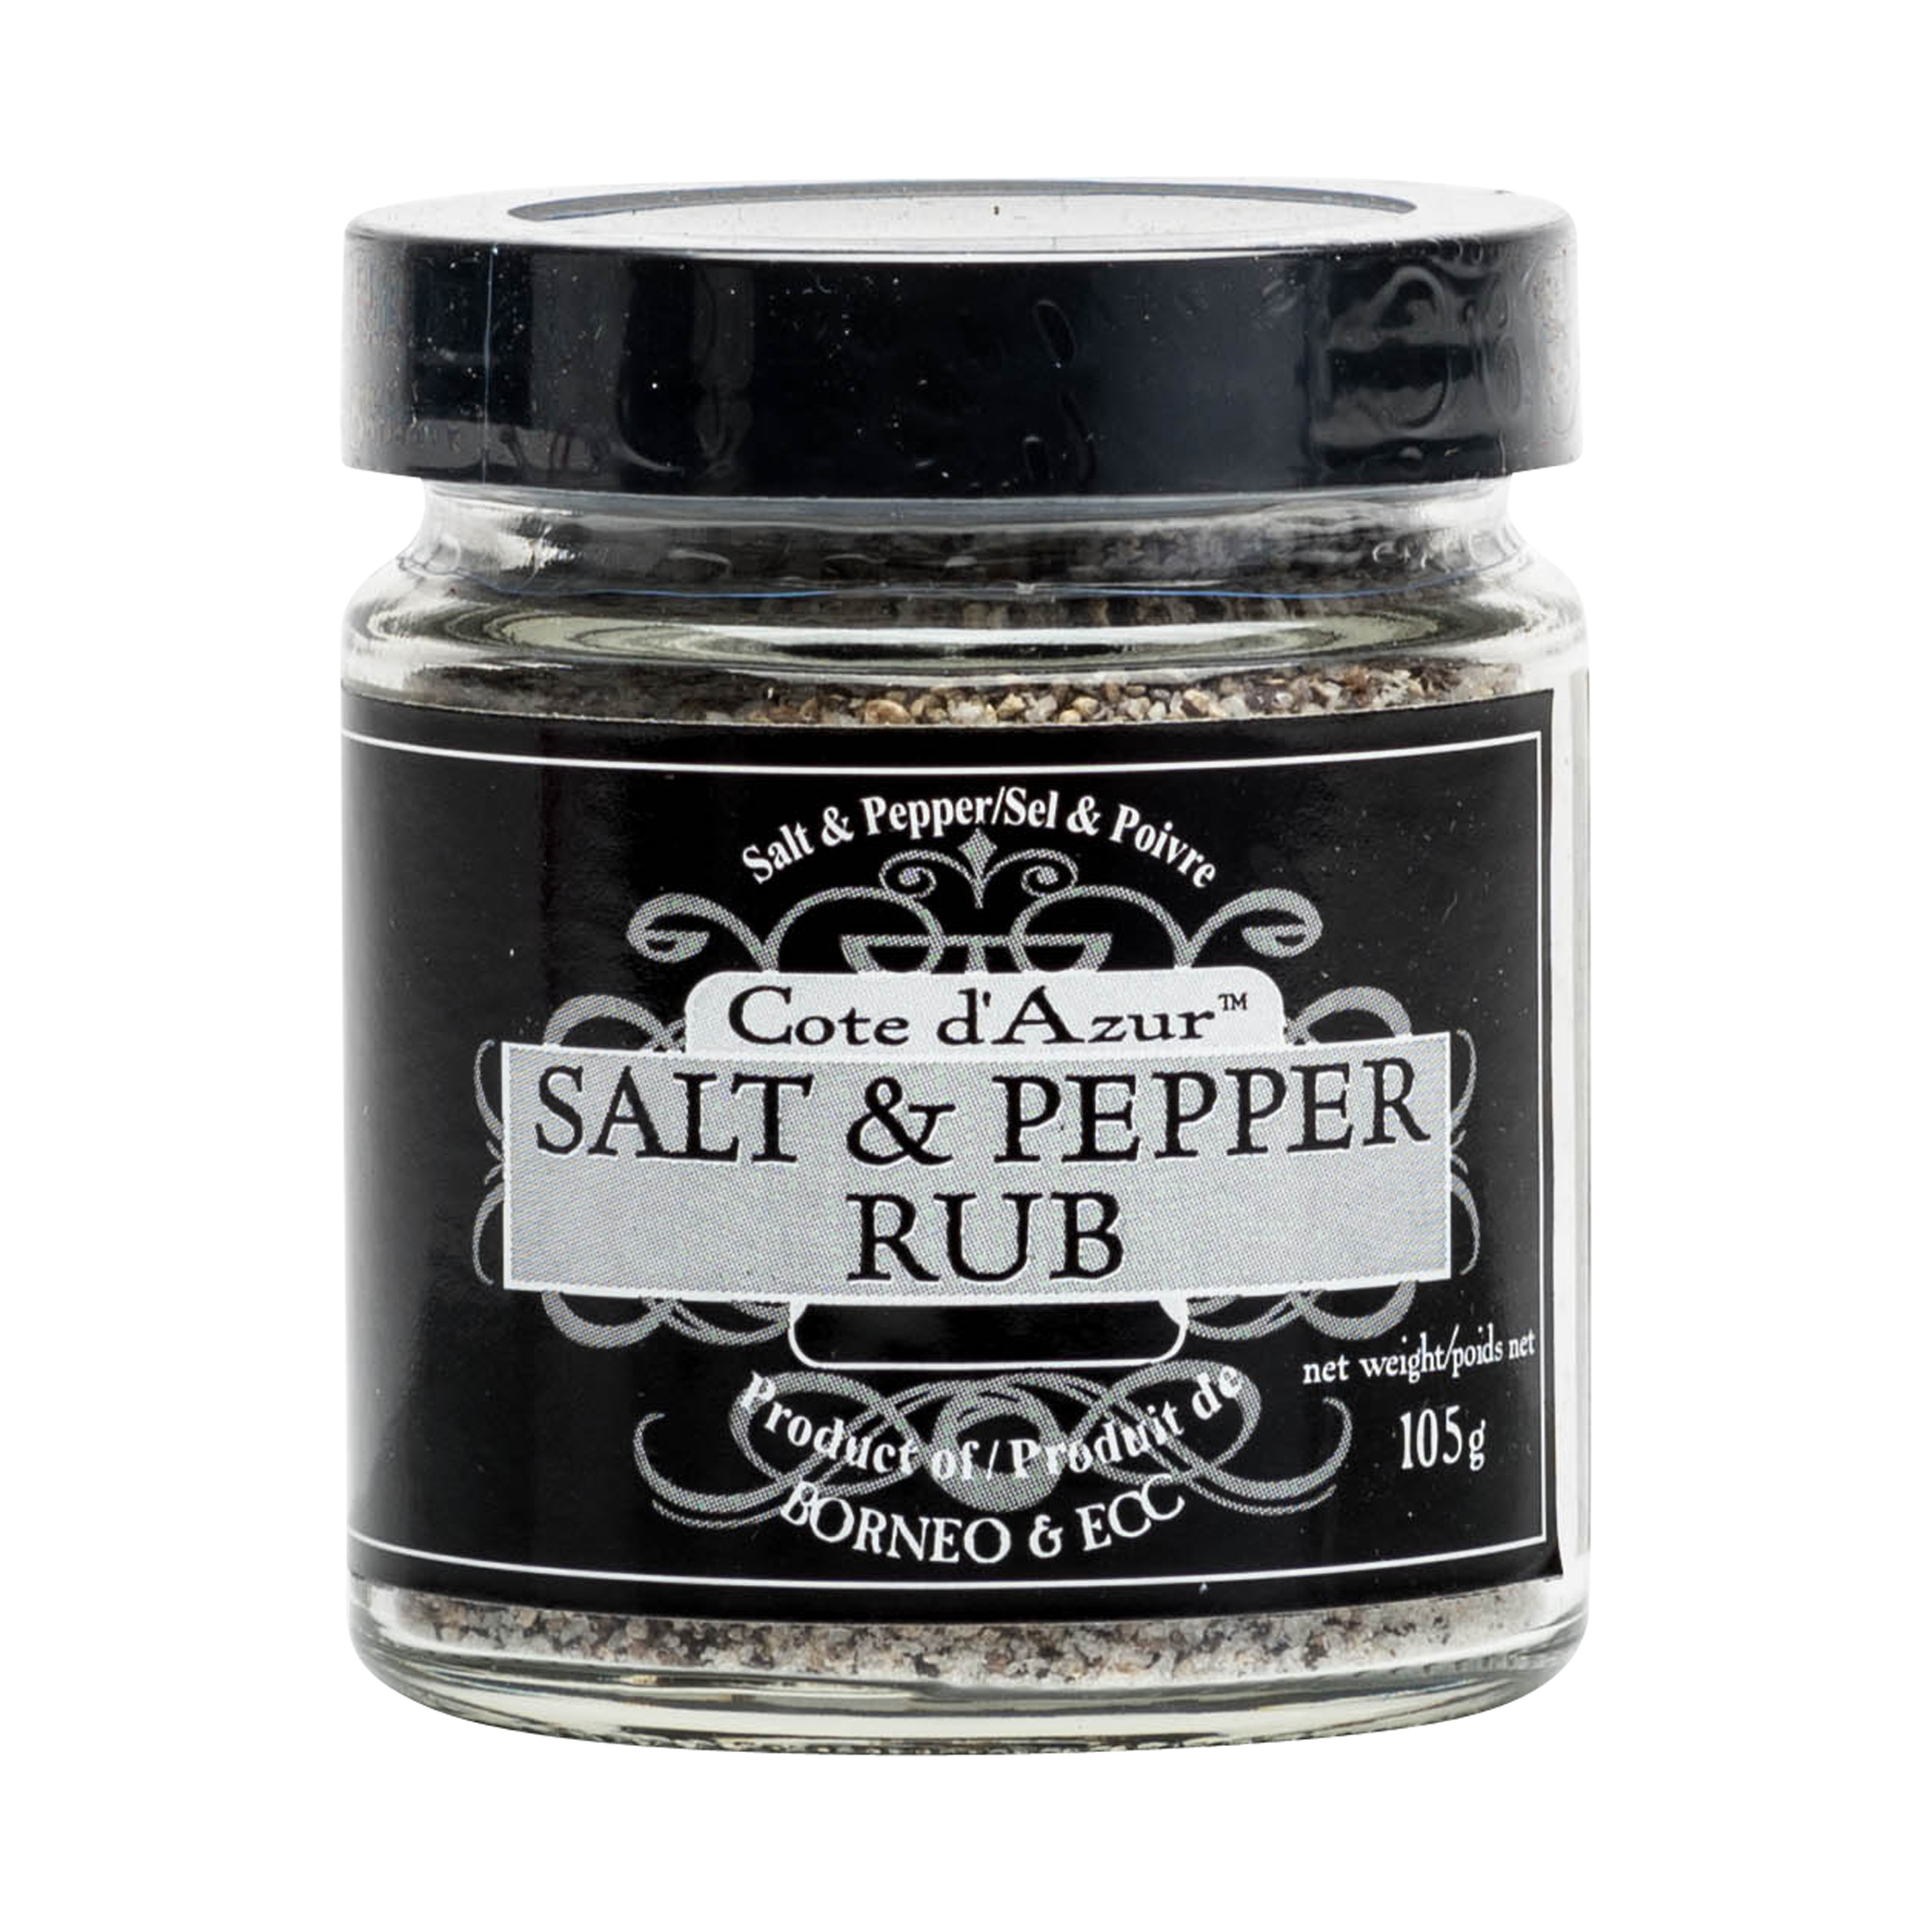 SALT & PEPPER RUB